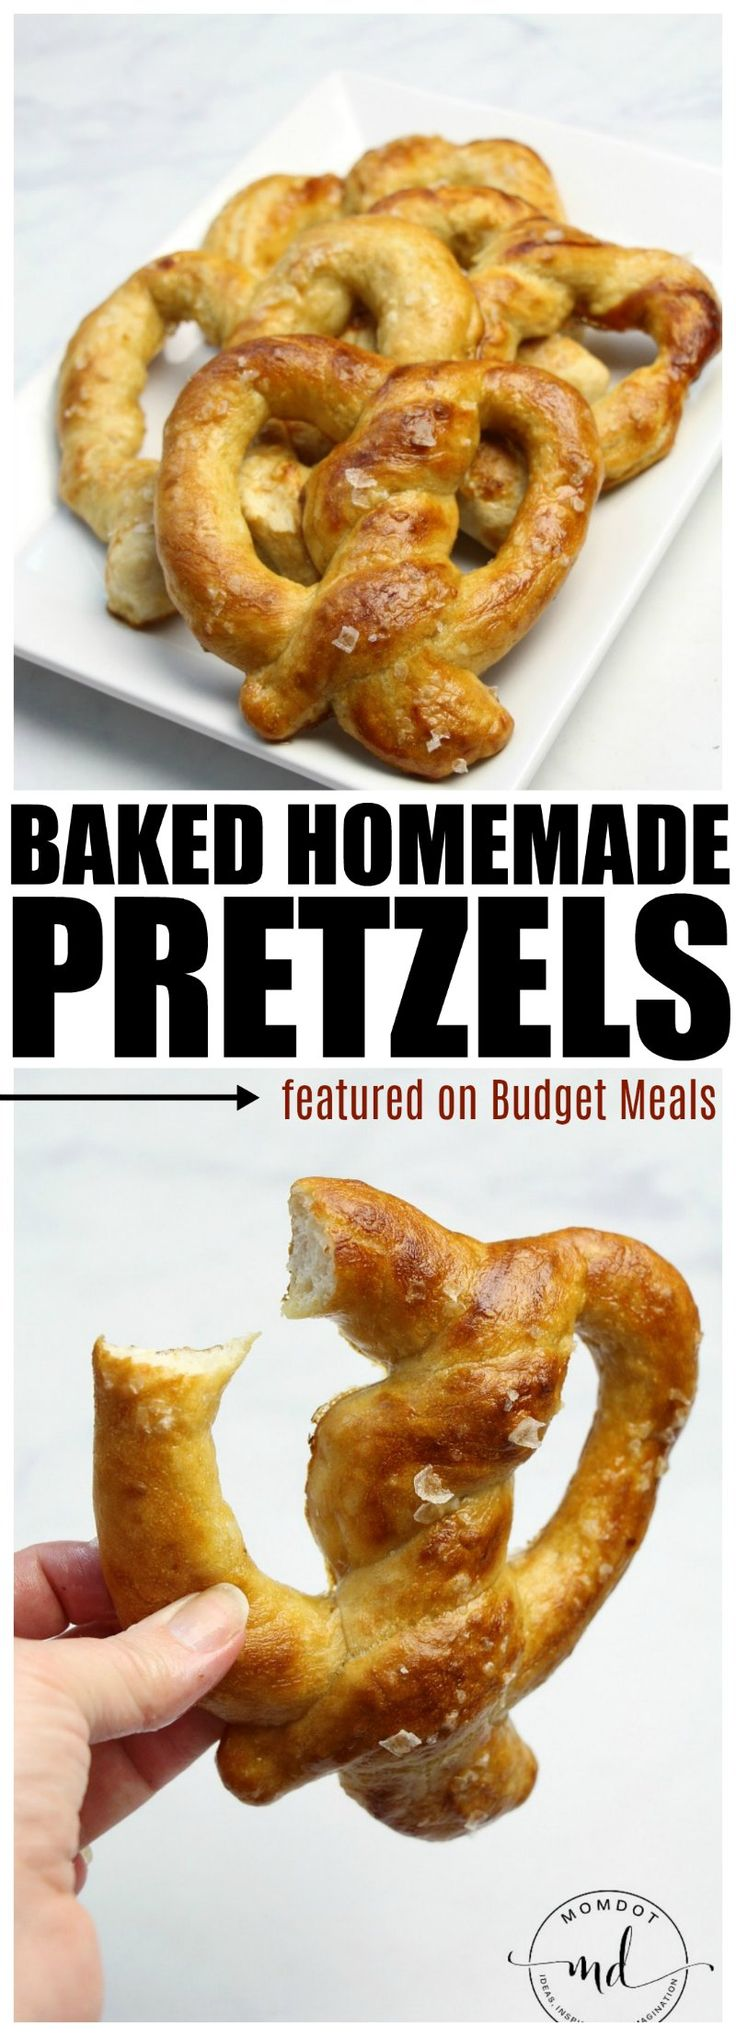 Baked Homemade Pretzels are sure to hit the spot! Perfectly salty and easy to customize , you will not believe how easy it is to create and enjoy